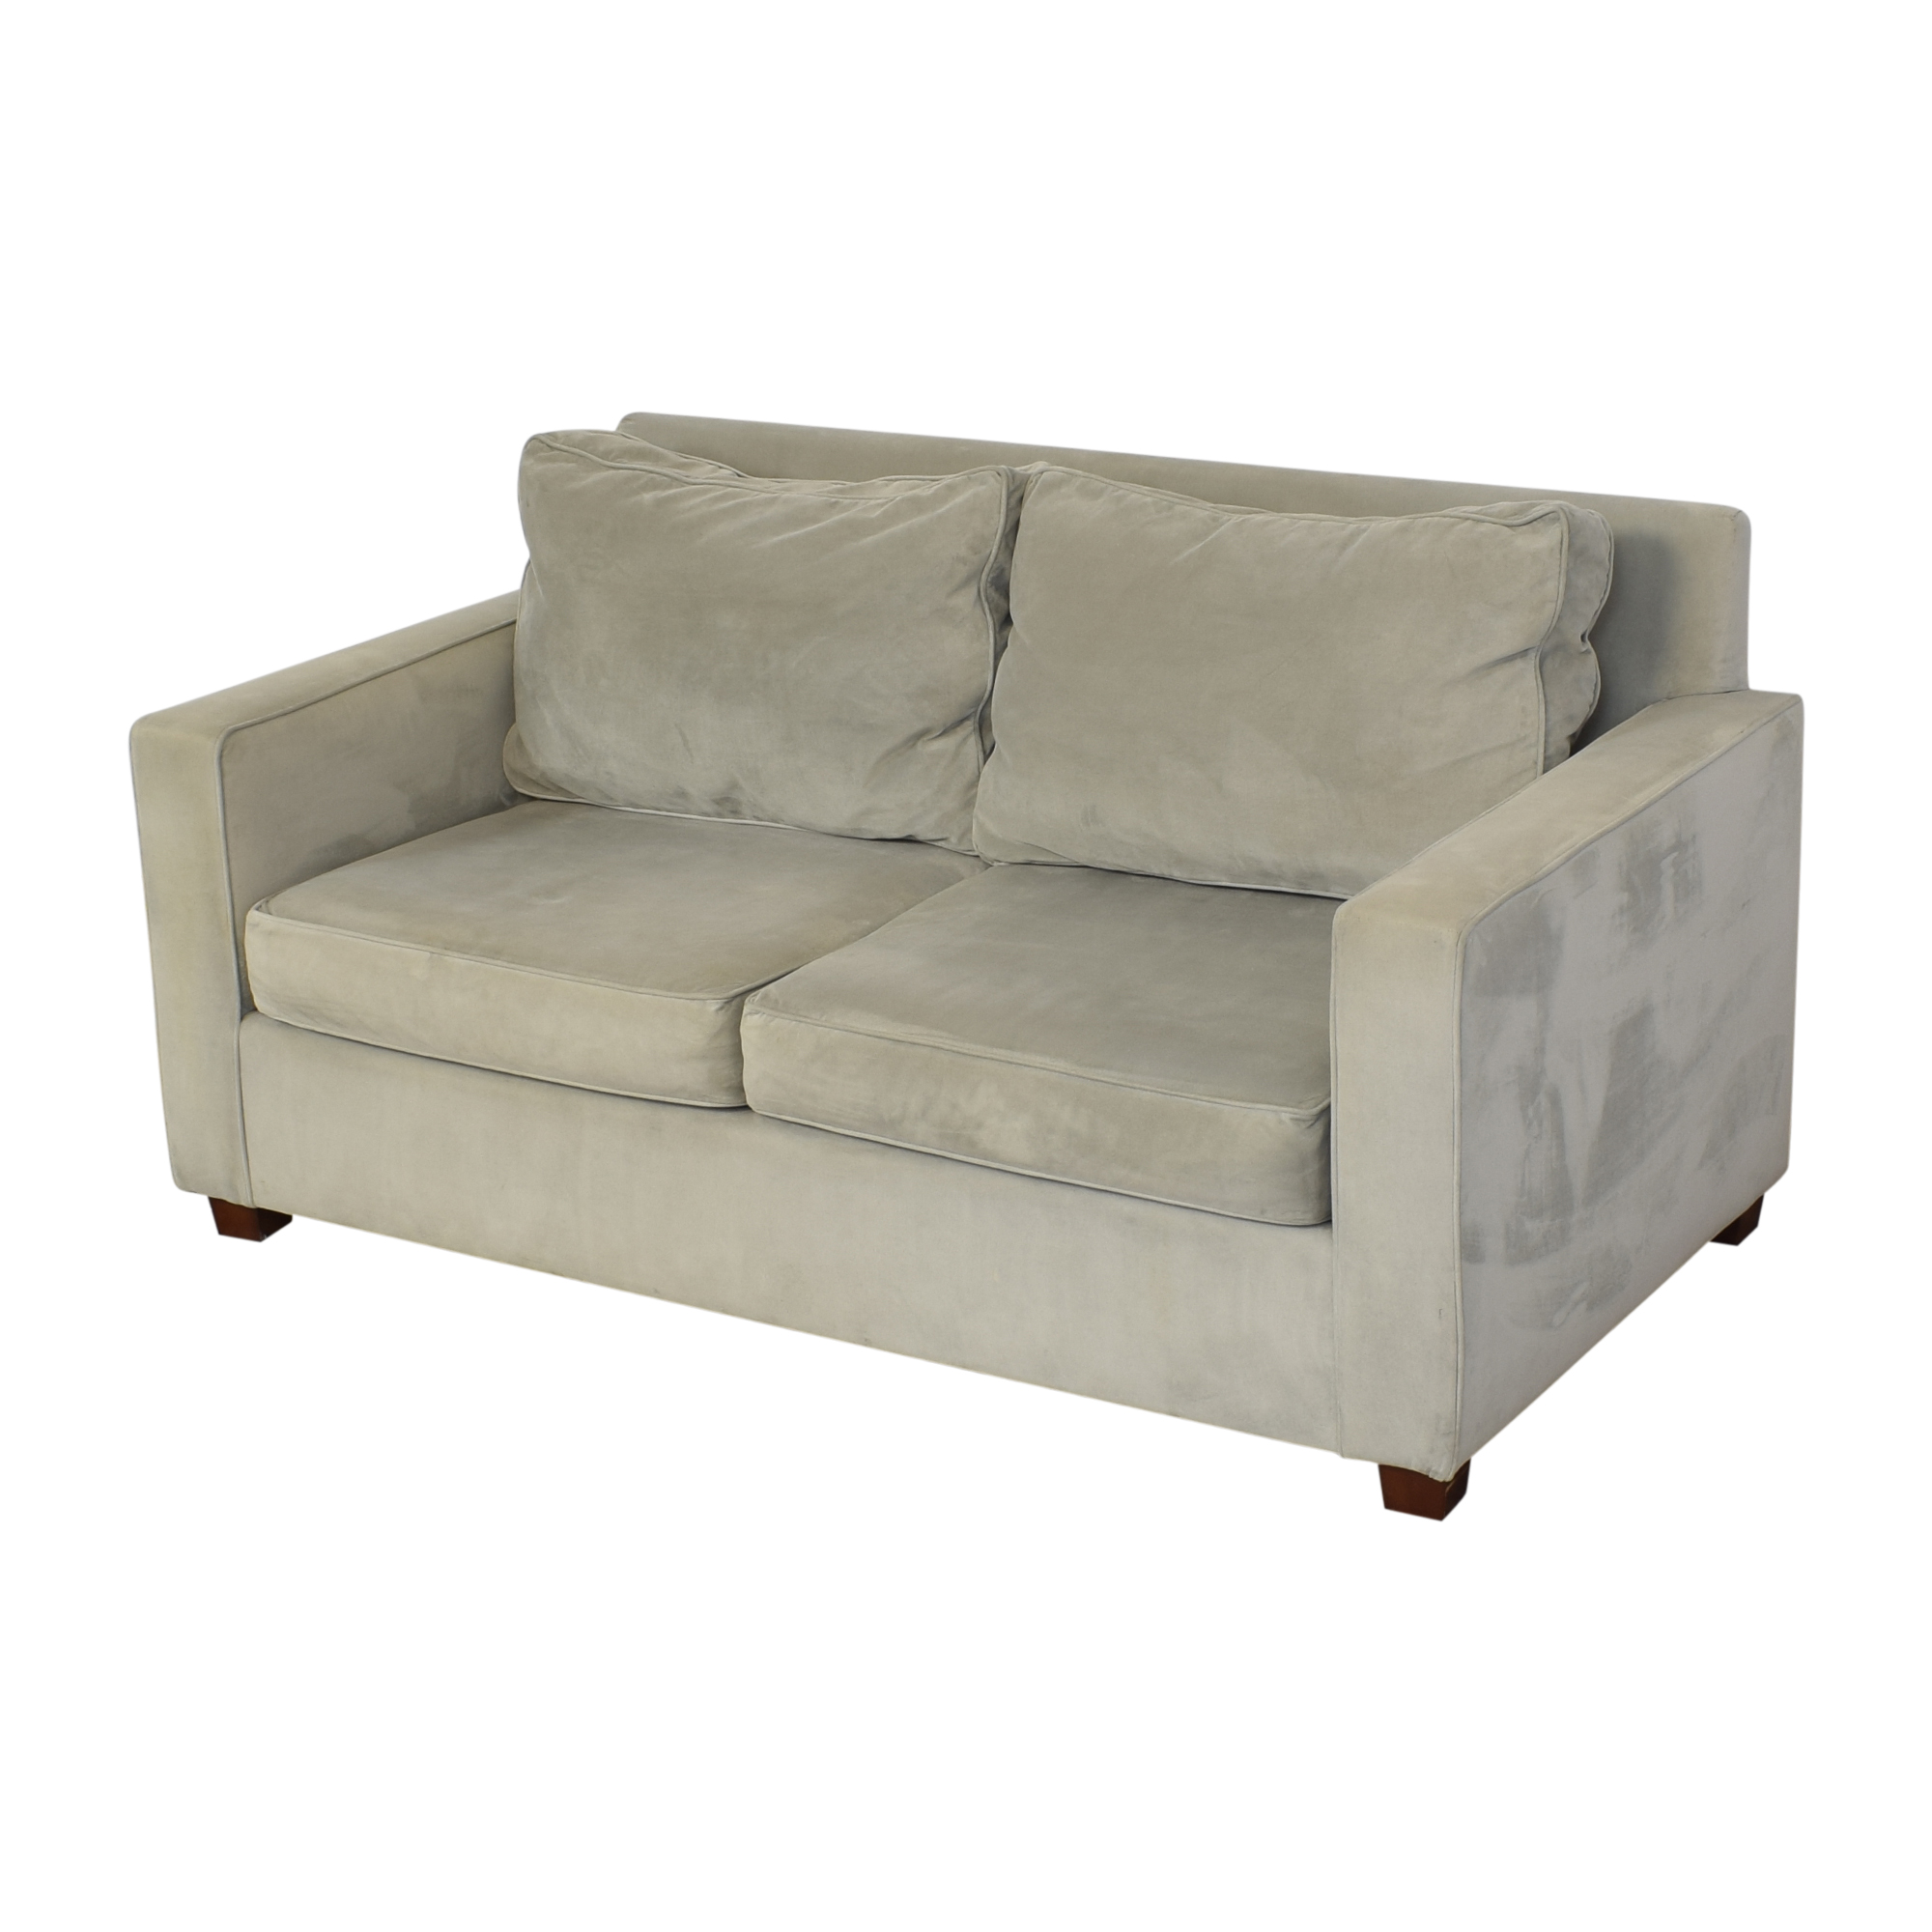 West Elm West Elm Loveseat discount